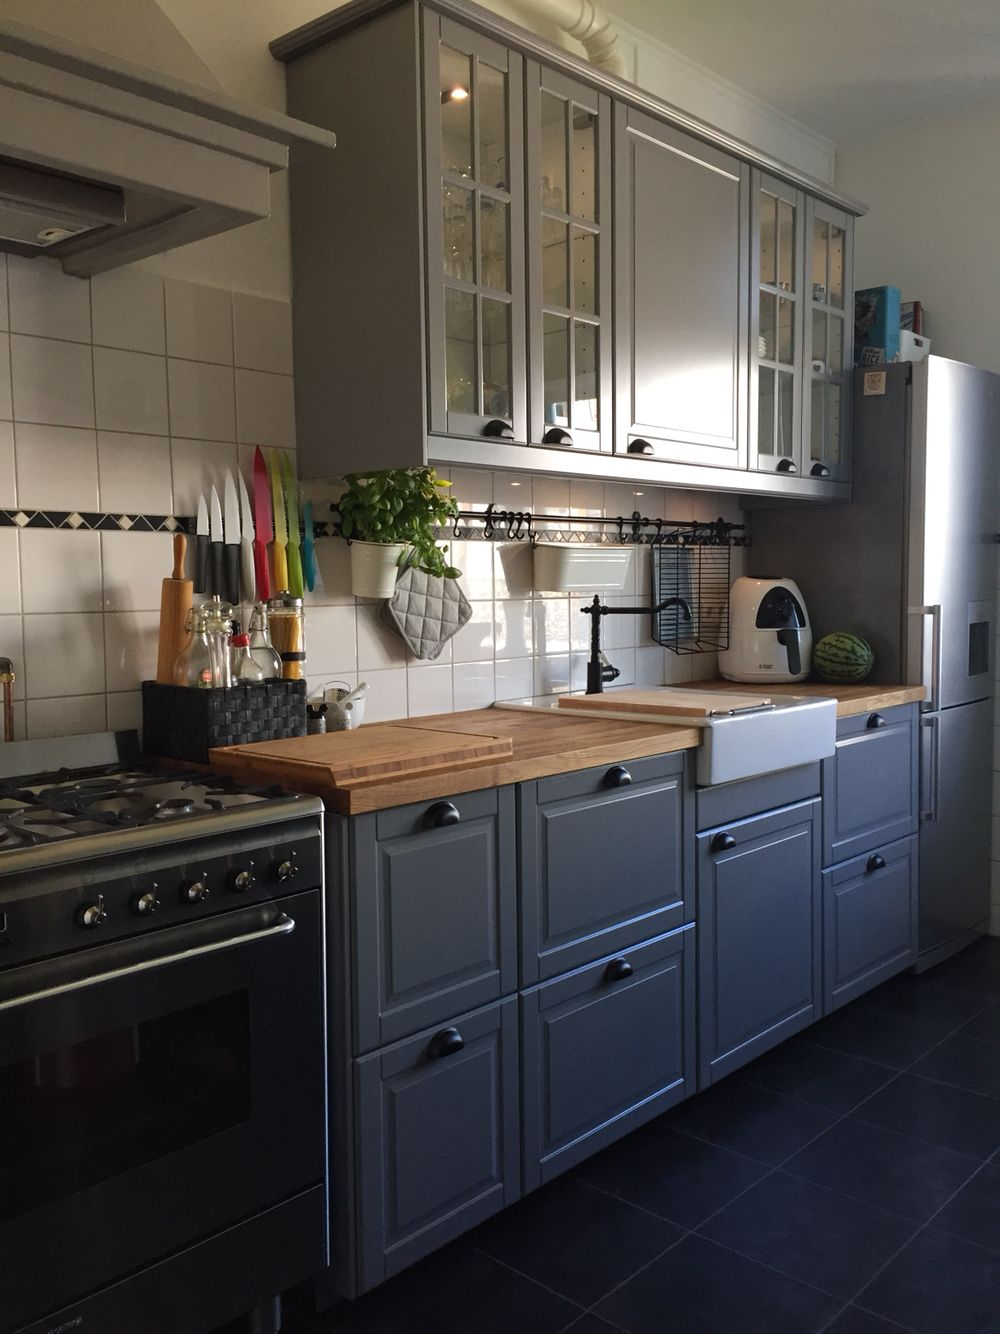 New Kitchen Ikea Bodbyn Grey Ikea Bodbyn Pinterest Bodbyn Grey Kitchens And Gray